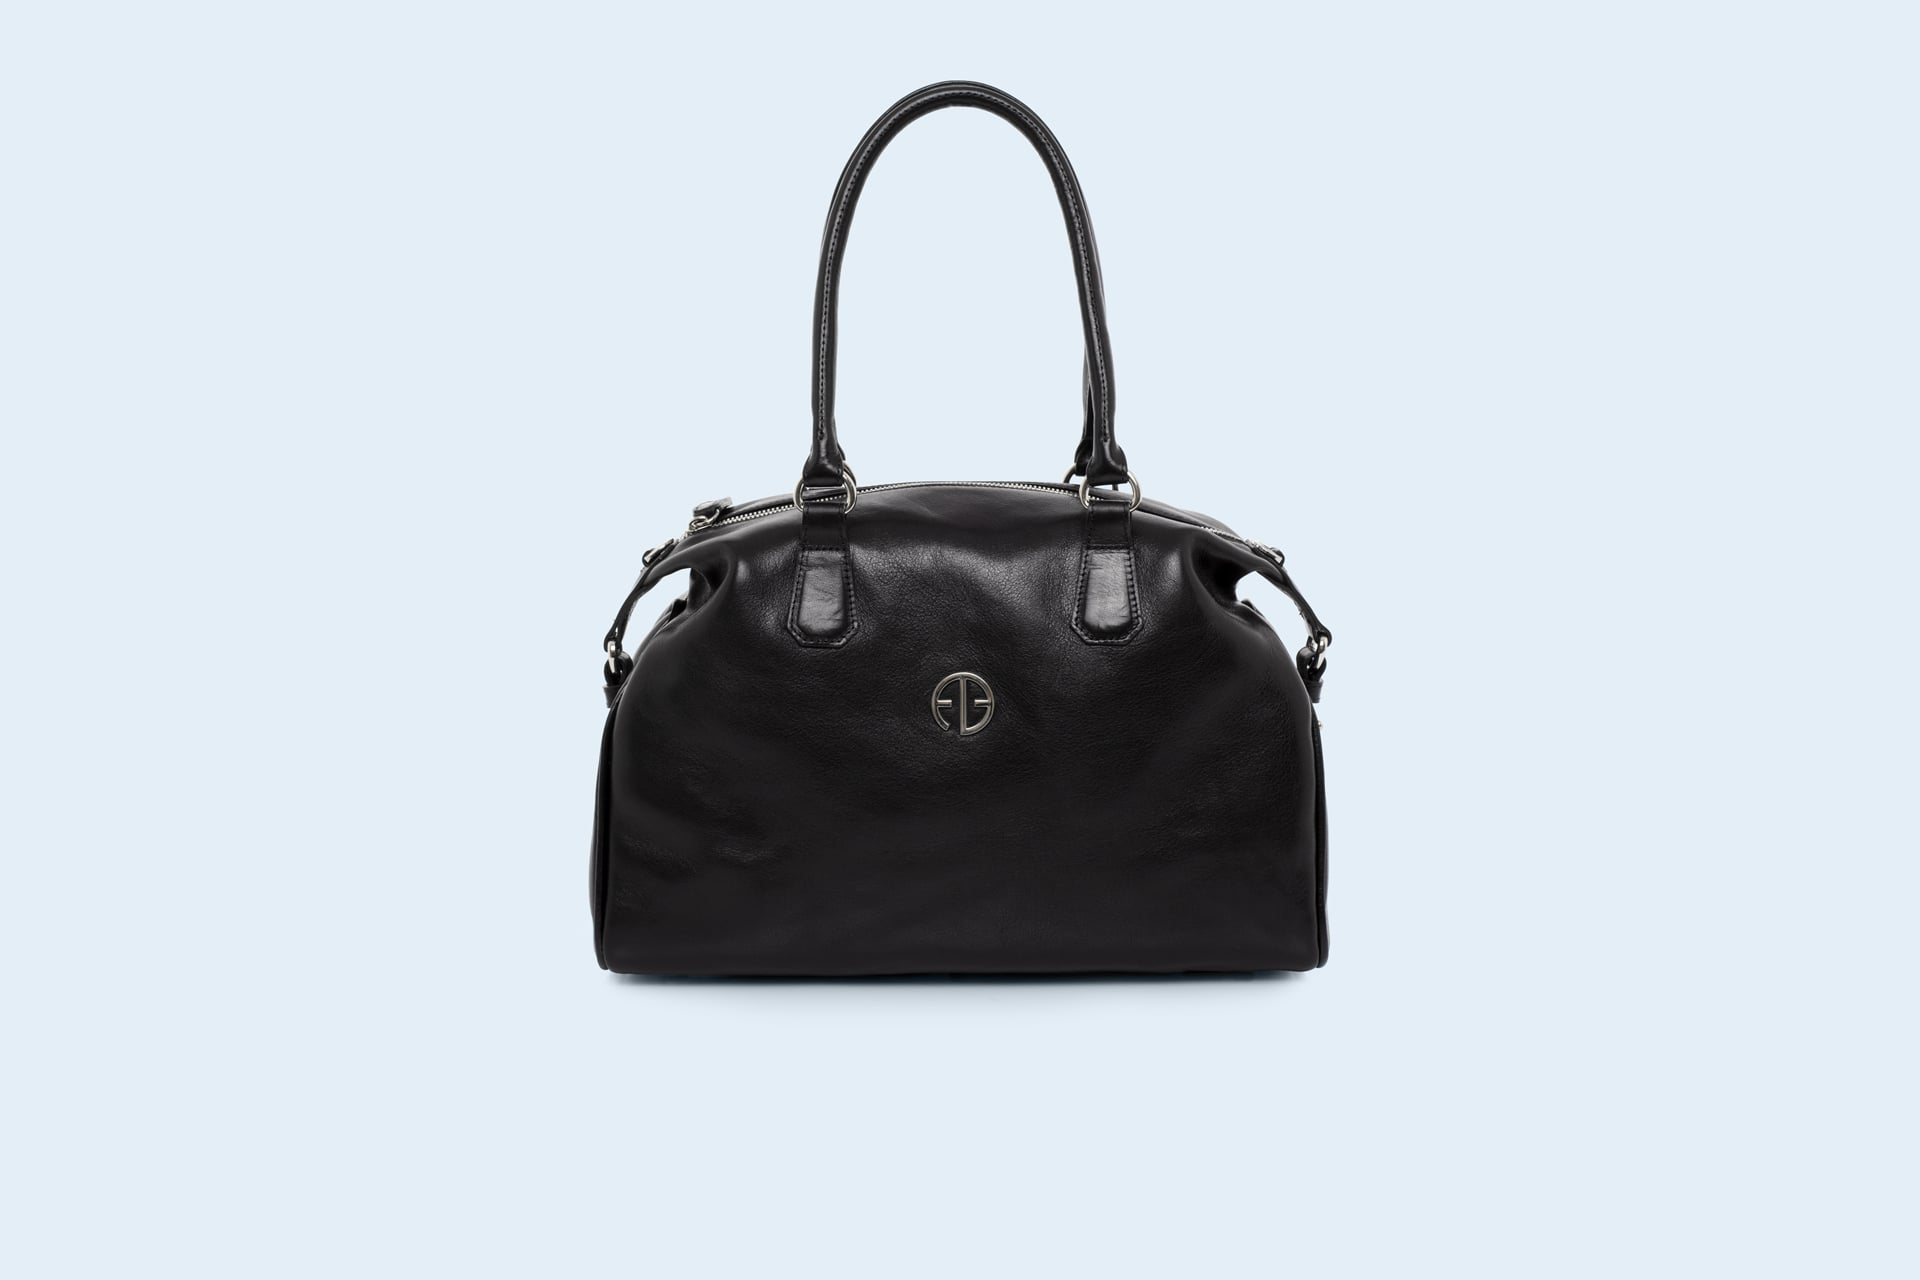 bowler-bag-black-ADAM-BARON-1.jpg